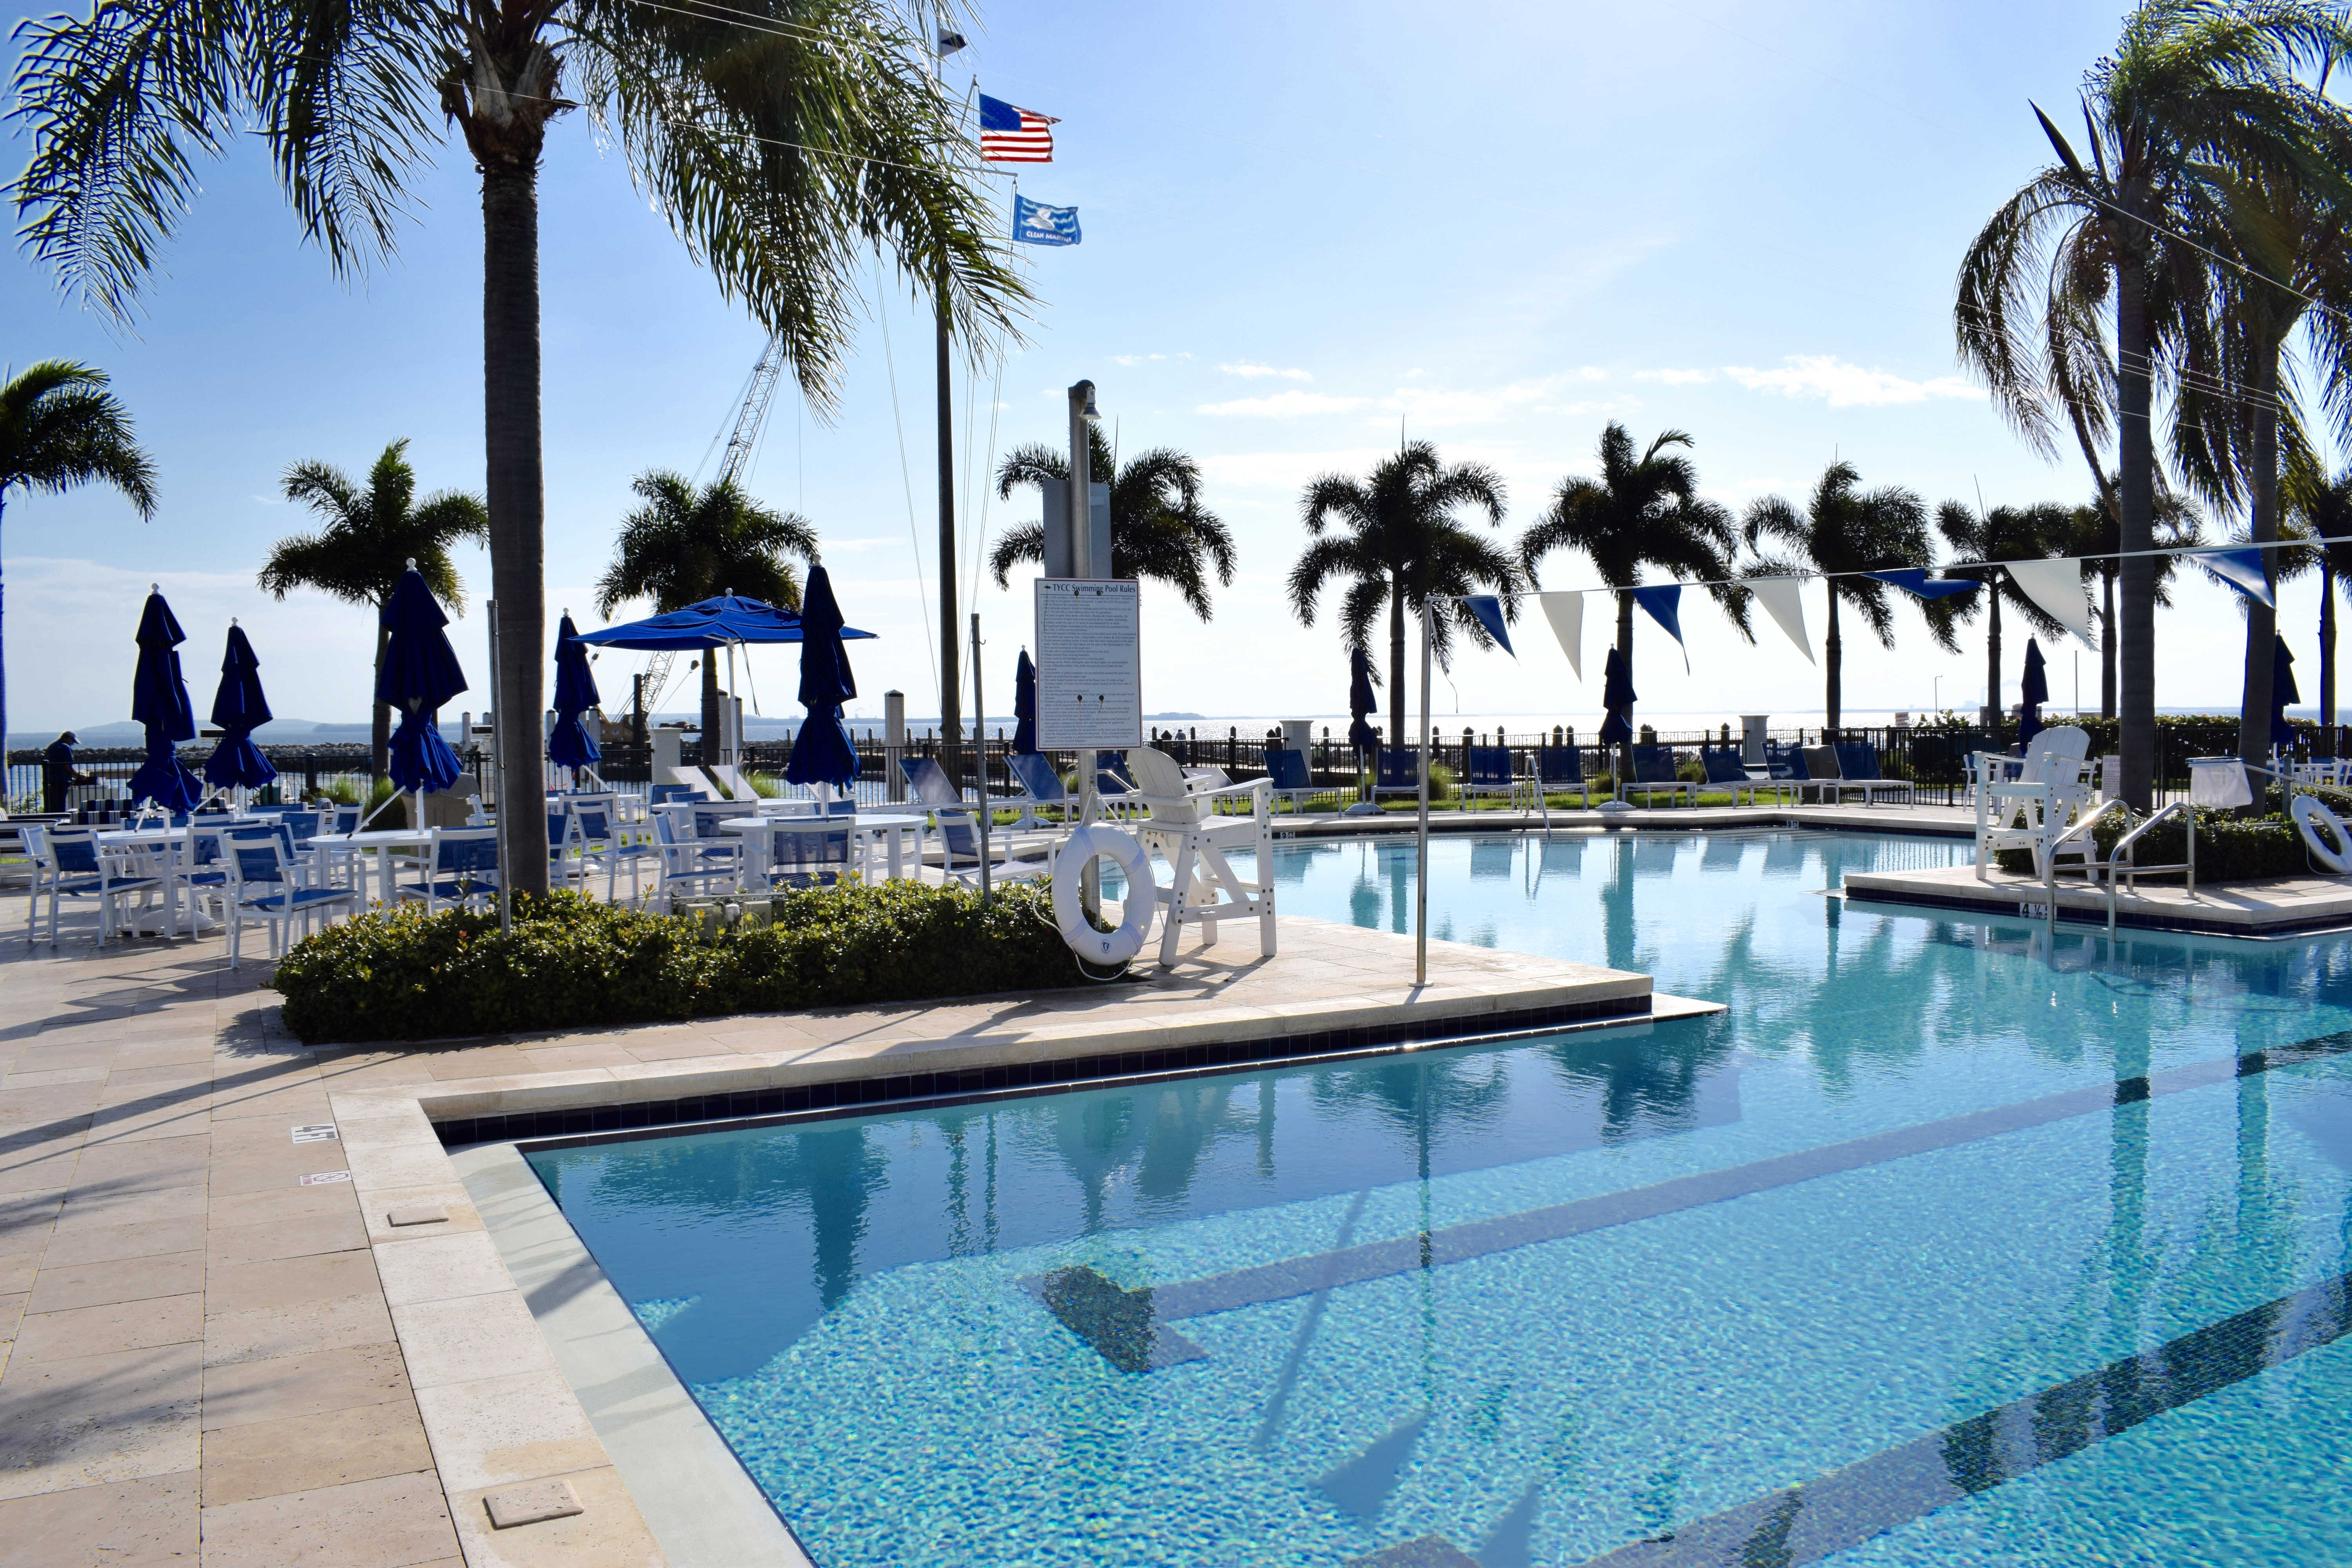 Tampa Yacht and Country Club pool